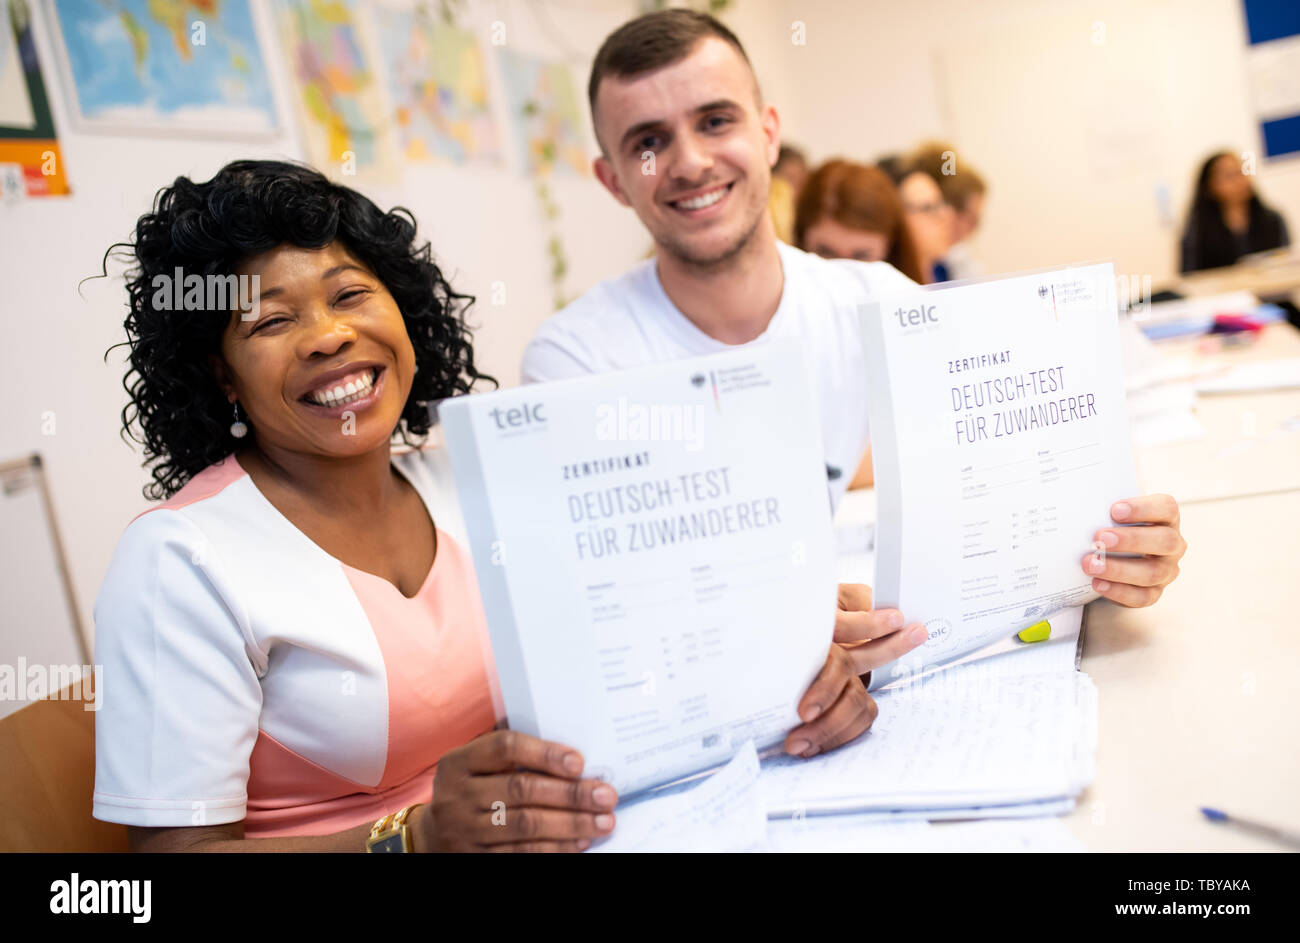 Munich, Germany. 04th June, 2019. Angela Nwaubani from Nigeria and Enver Latifi from Kosovo are happy about their certificates 'Deutsch-Test für Zuwanderer' (German test for immigrants) which they received for their successful participation in an integration course for immigrants of the Federal Office for Migration (BAMF). Credit: Sven Hoppe/dpa/Alamy Live News - Stock Image